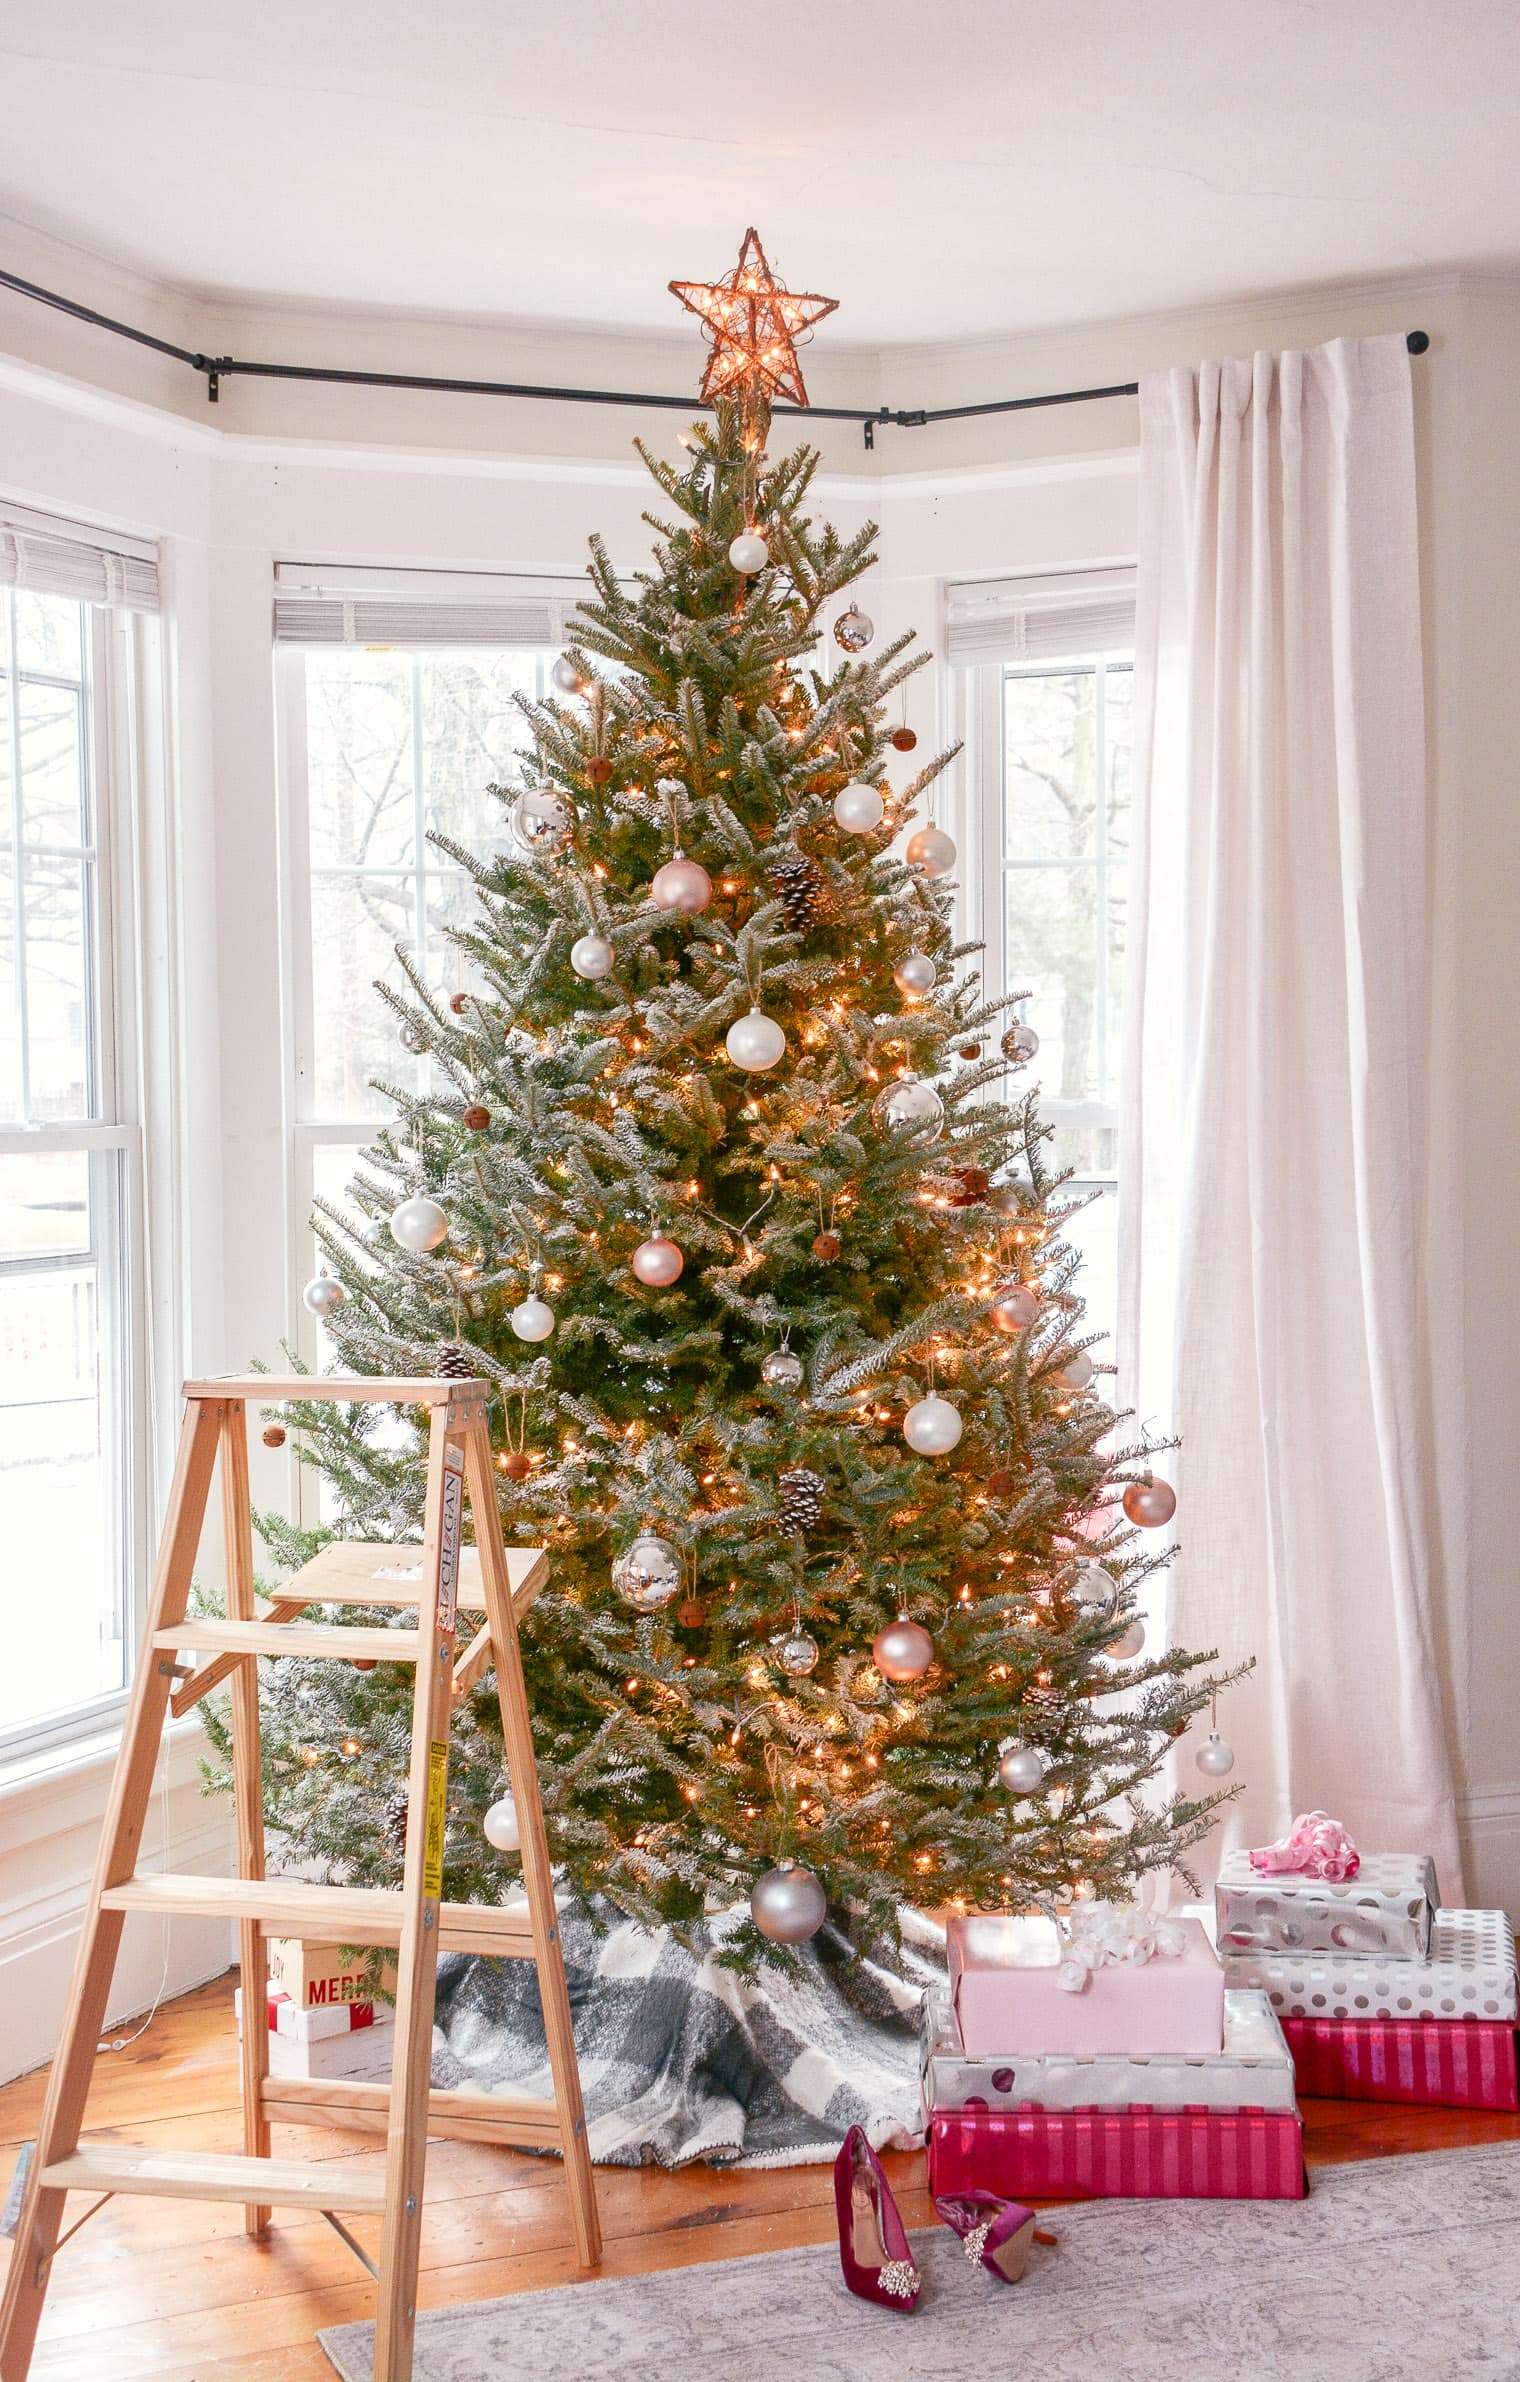 Learn to decorate your Christmas tree like a pro this holiday season with these easy and amazing tree decorating ideas and step by step tutorials! | glitterinc.com | @glitterinc // How to Flock a Real Christmas Tree